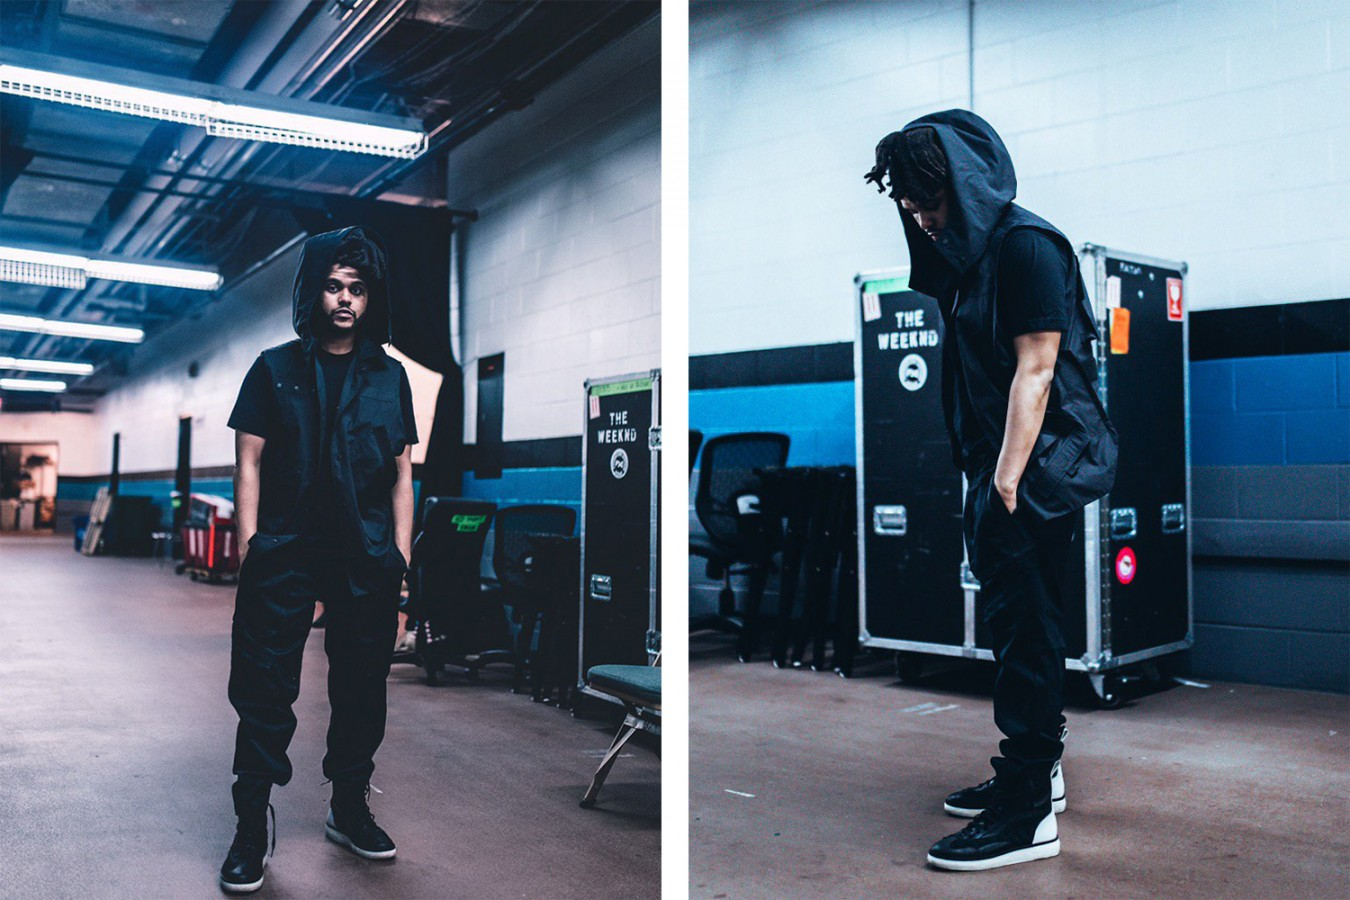 A First Look At The Weeknd x Alexander Wang Collaboration